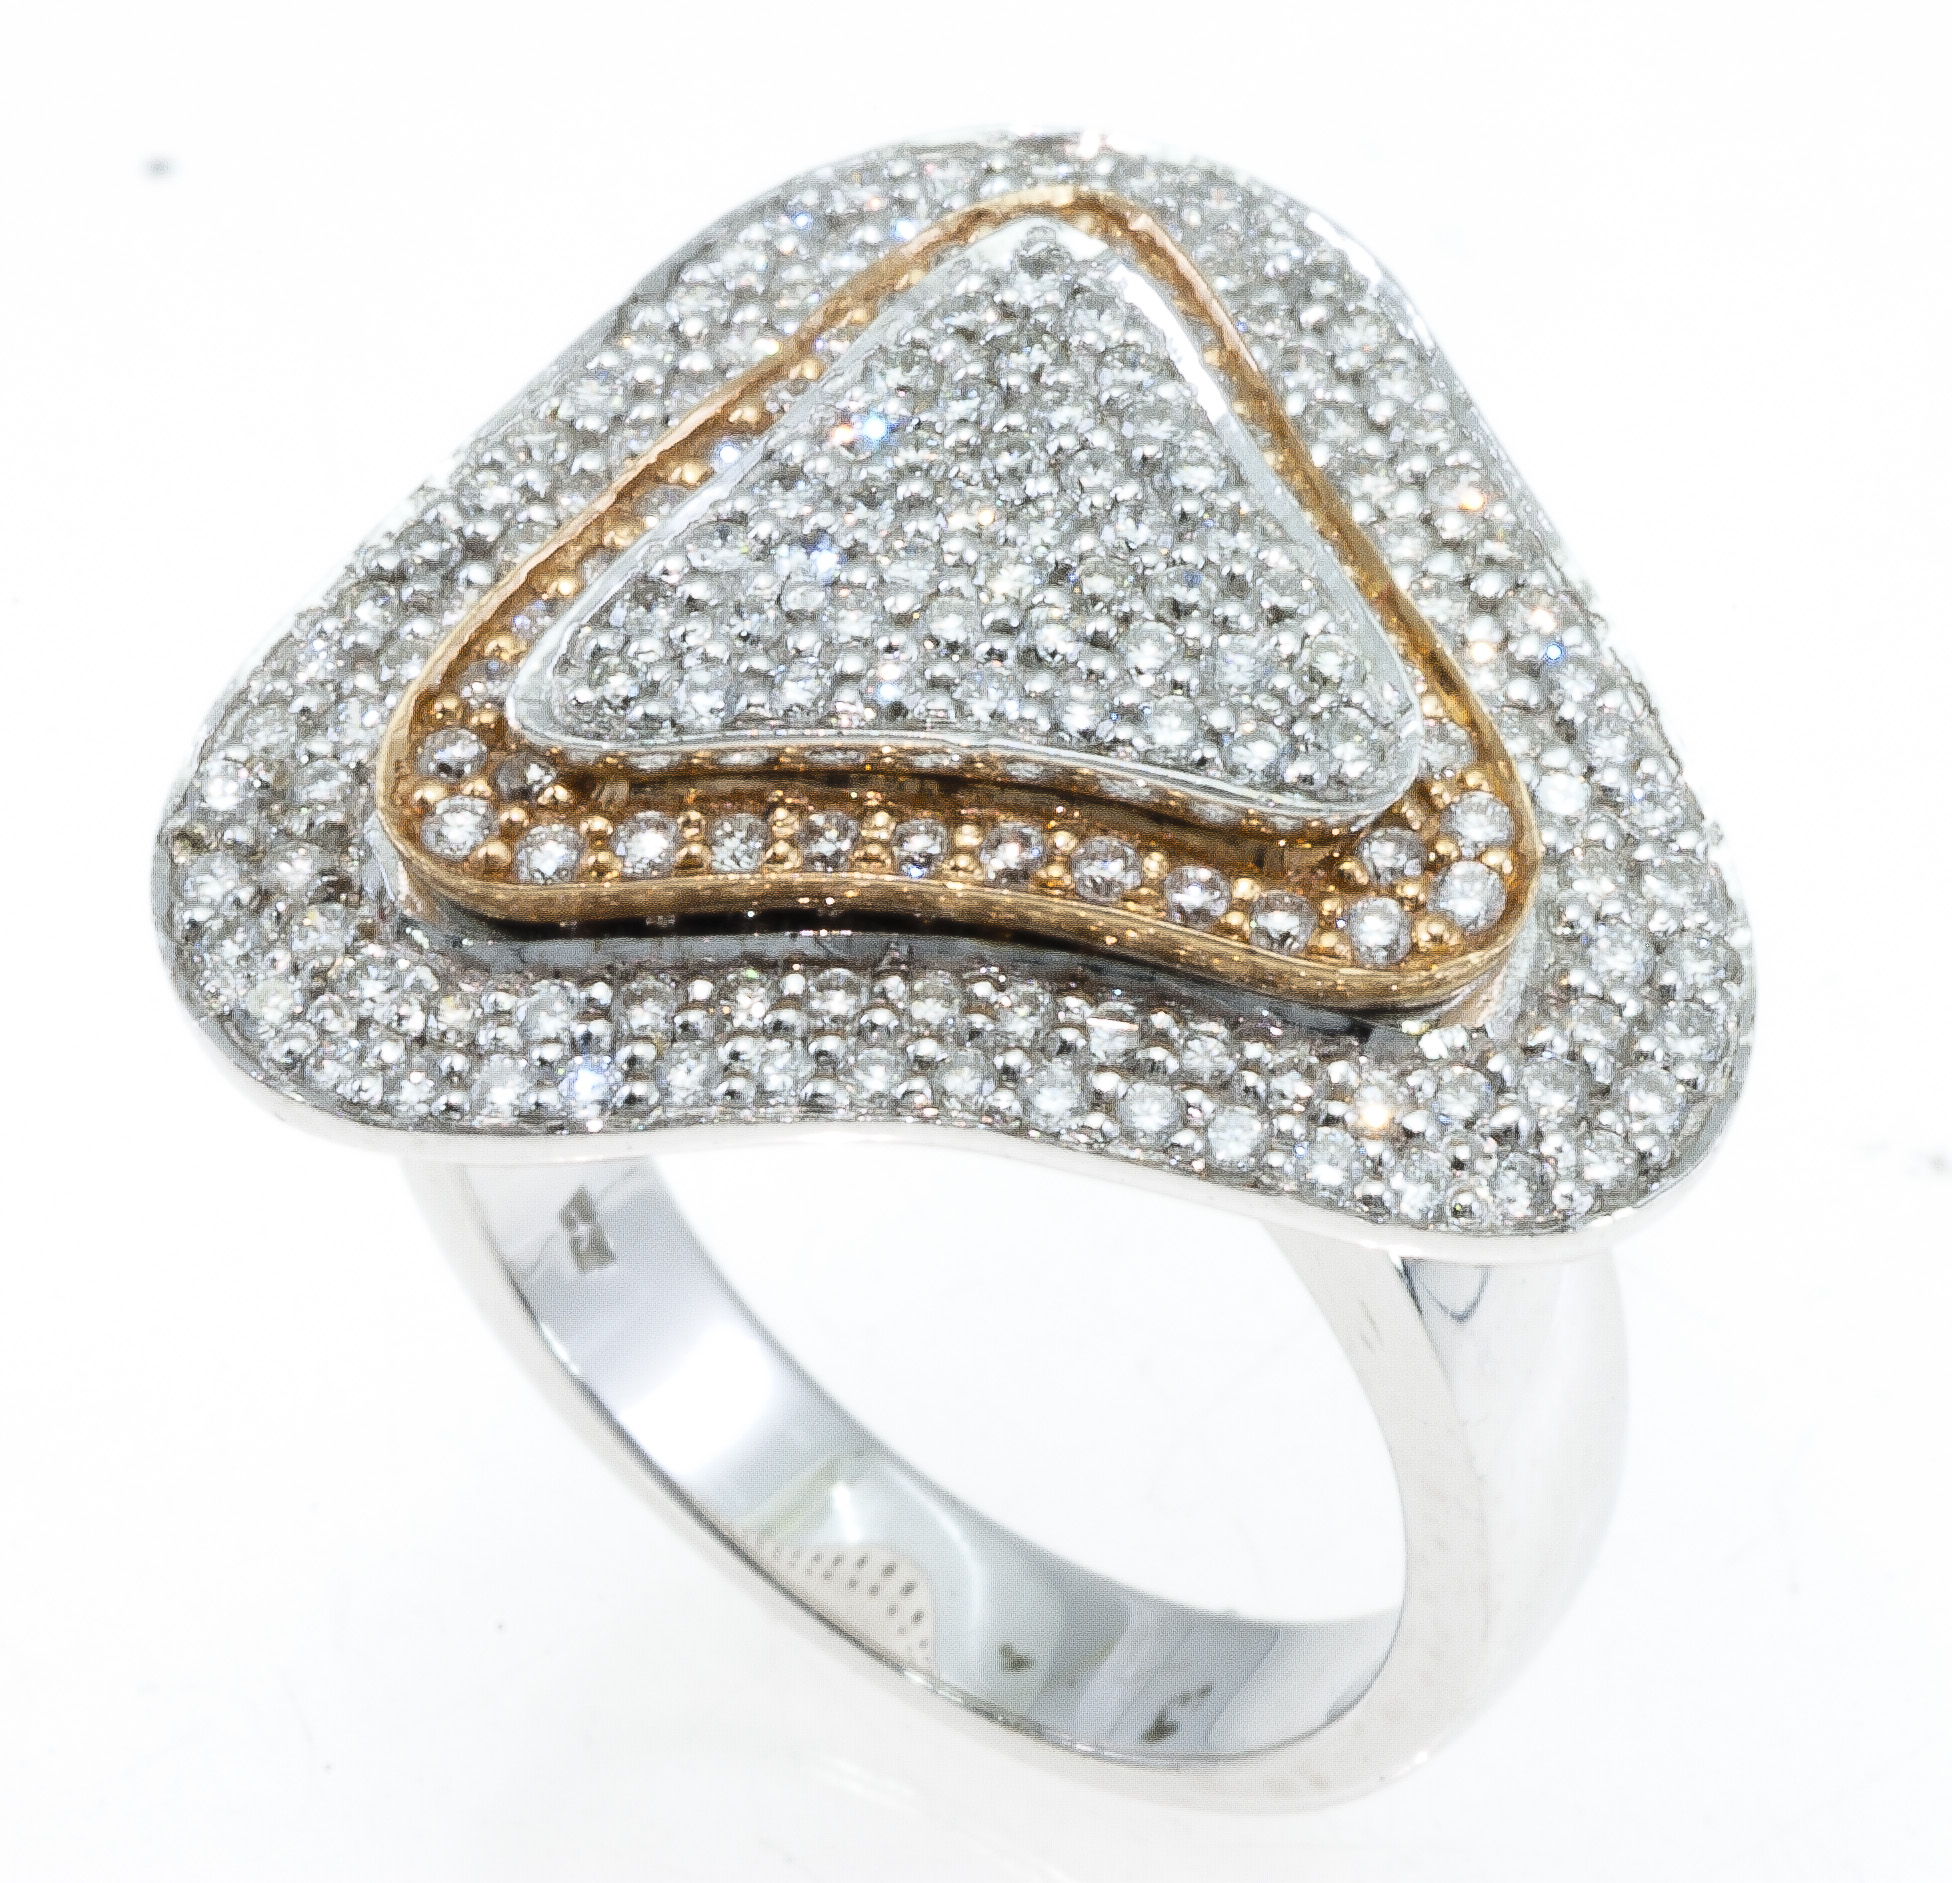 rings carats jewellery vannak diamonds ring micro com dome pin pave right tcw of hand